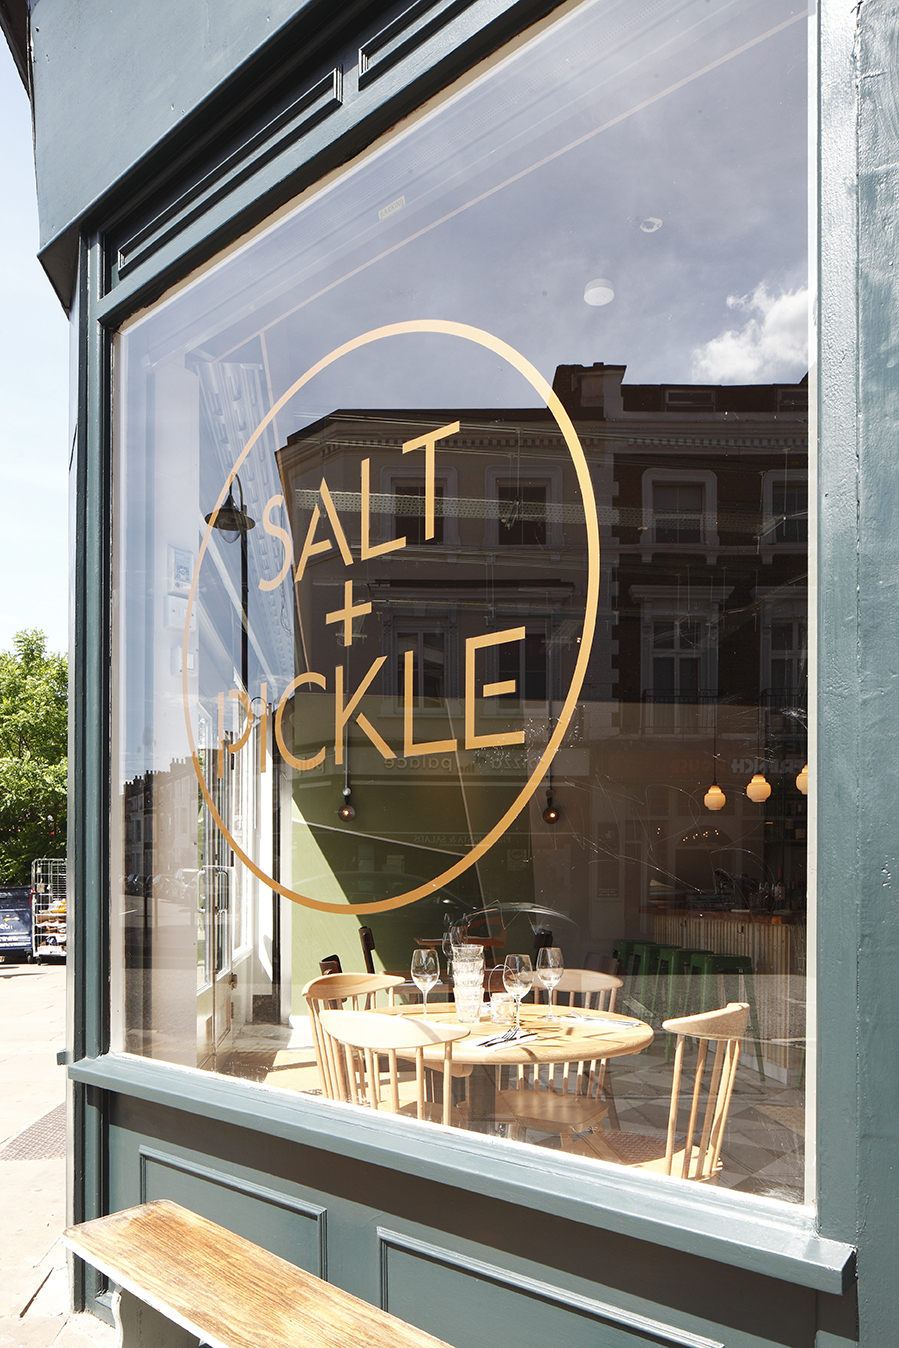 Salt + Pickle - outside sign